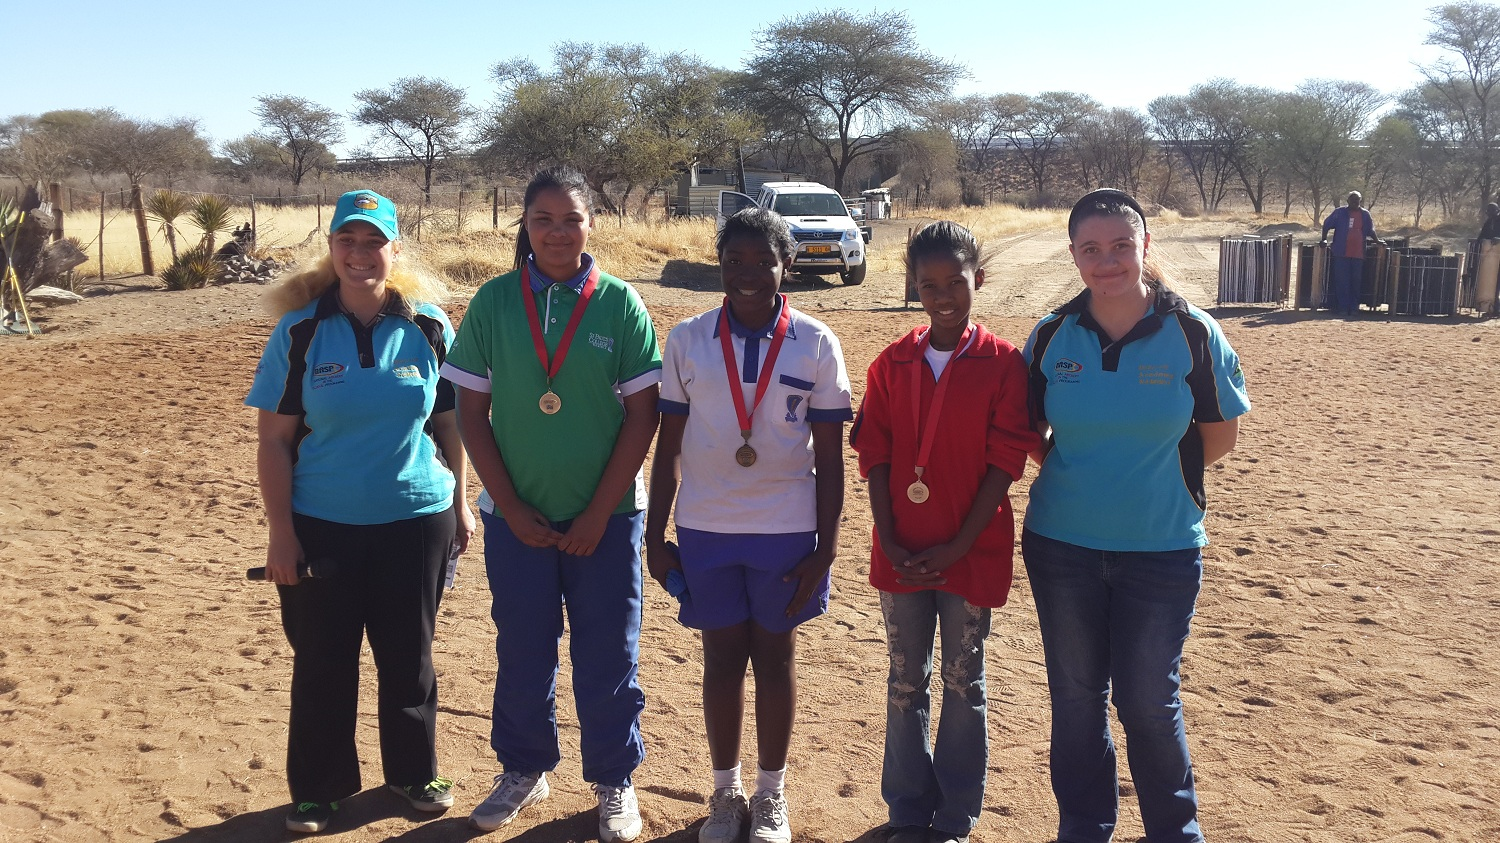 BERG OP ACADEMY HOSTED A NASP ARCHERY COMPETITION